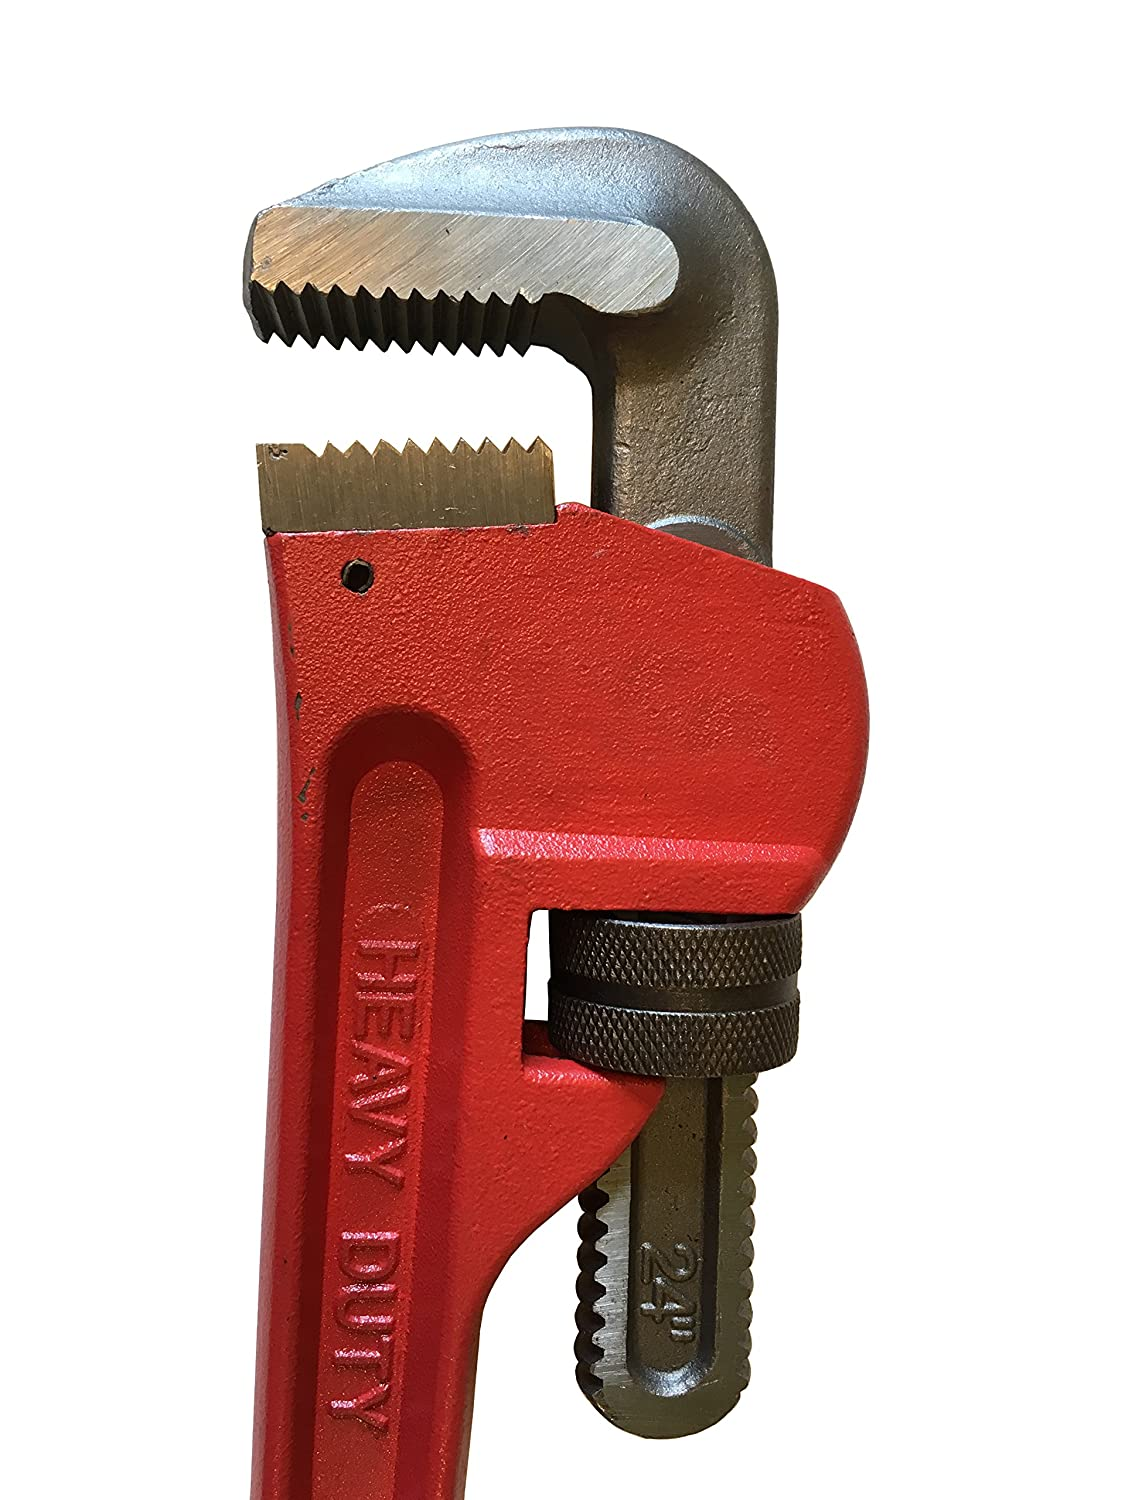 Heavy Duty Pipe Wrench Gripping Pipe Diameter 4 Handle 36 WT-2206